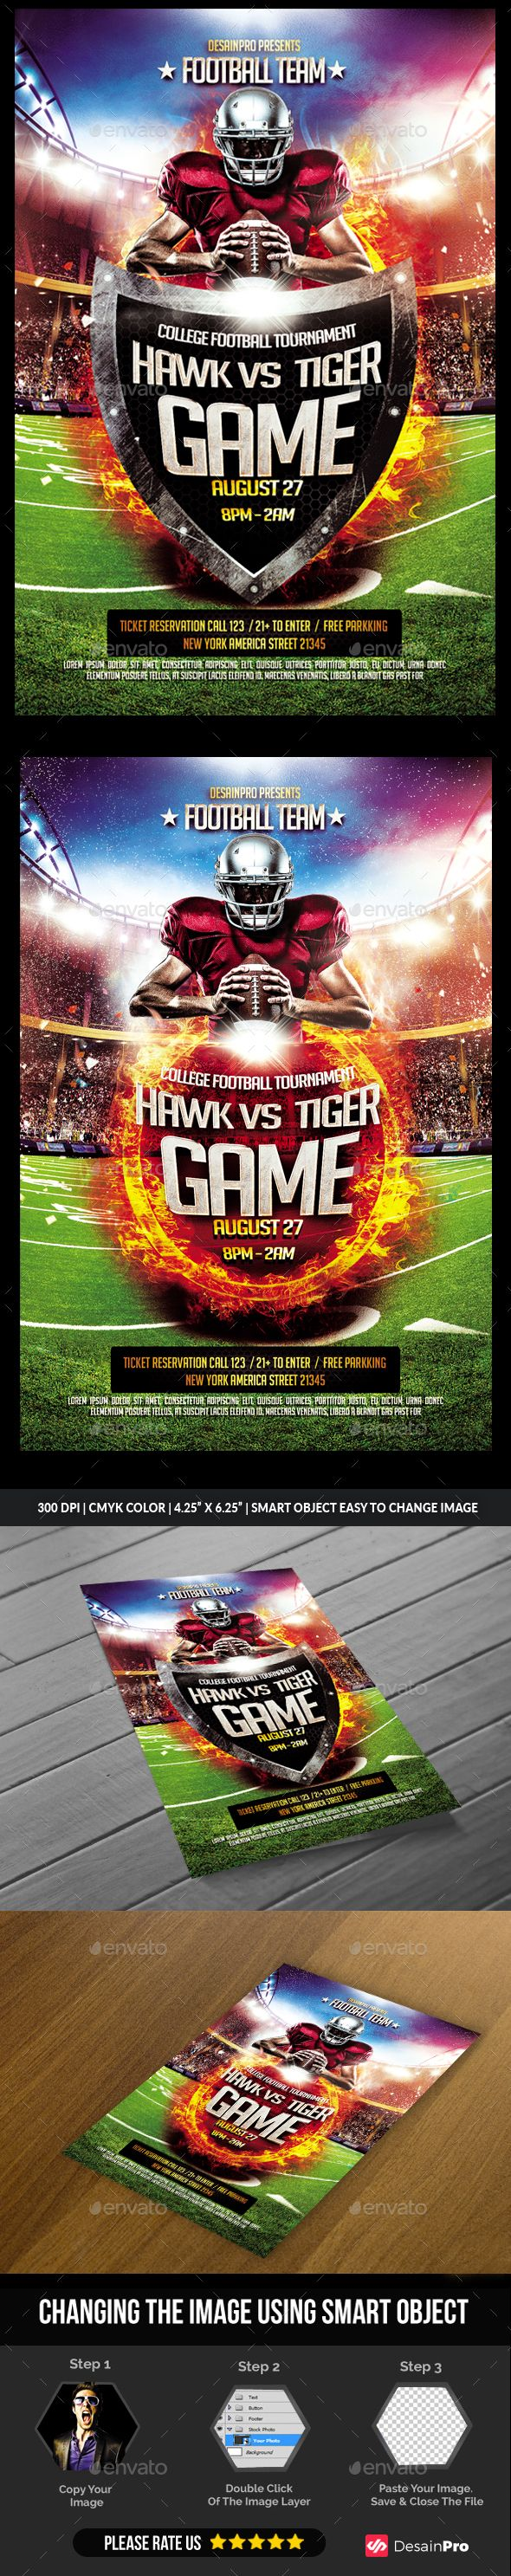 Football Flyer Template PSD - Sports Events